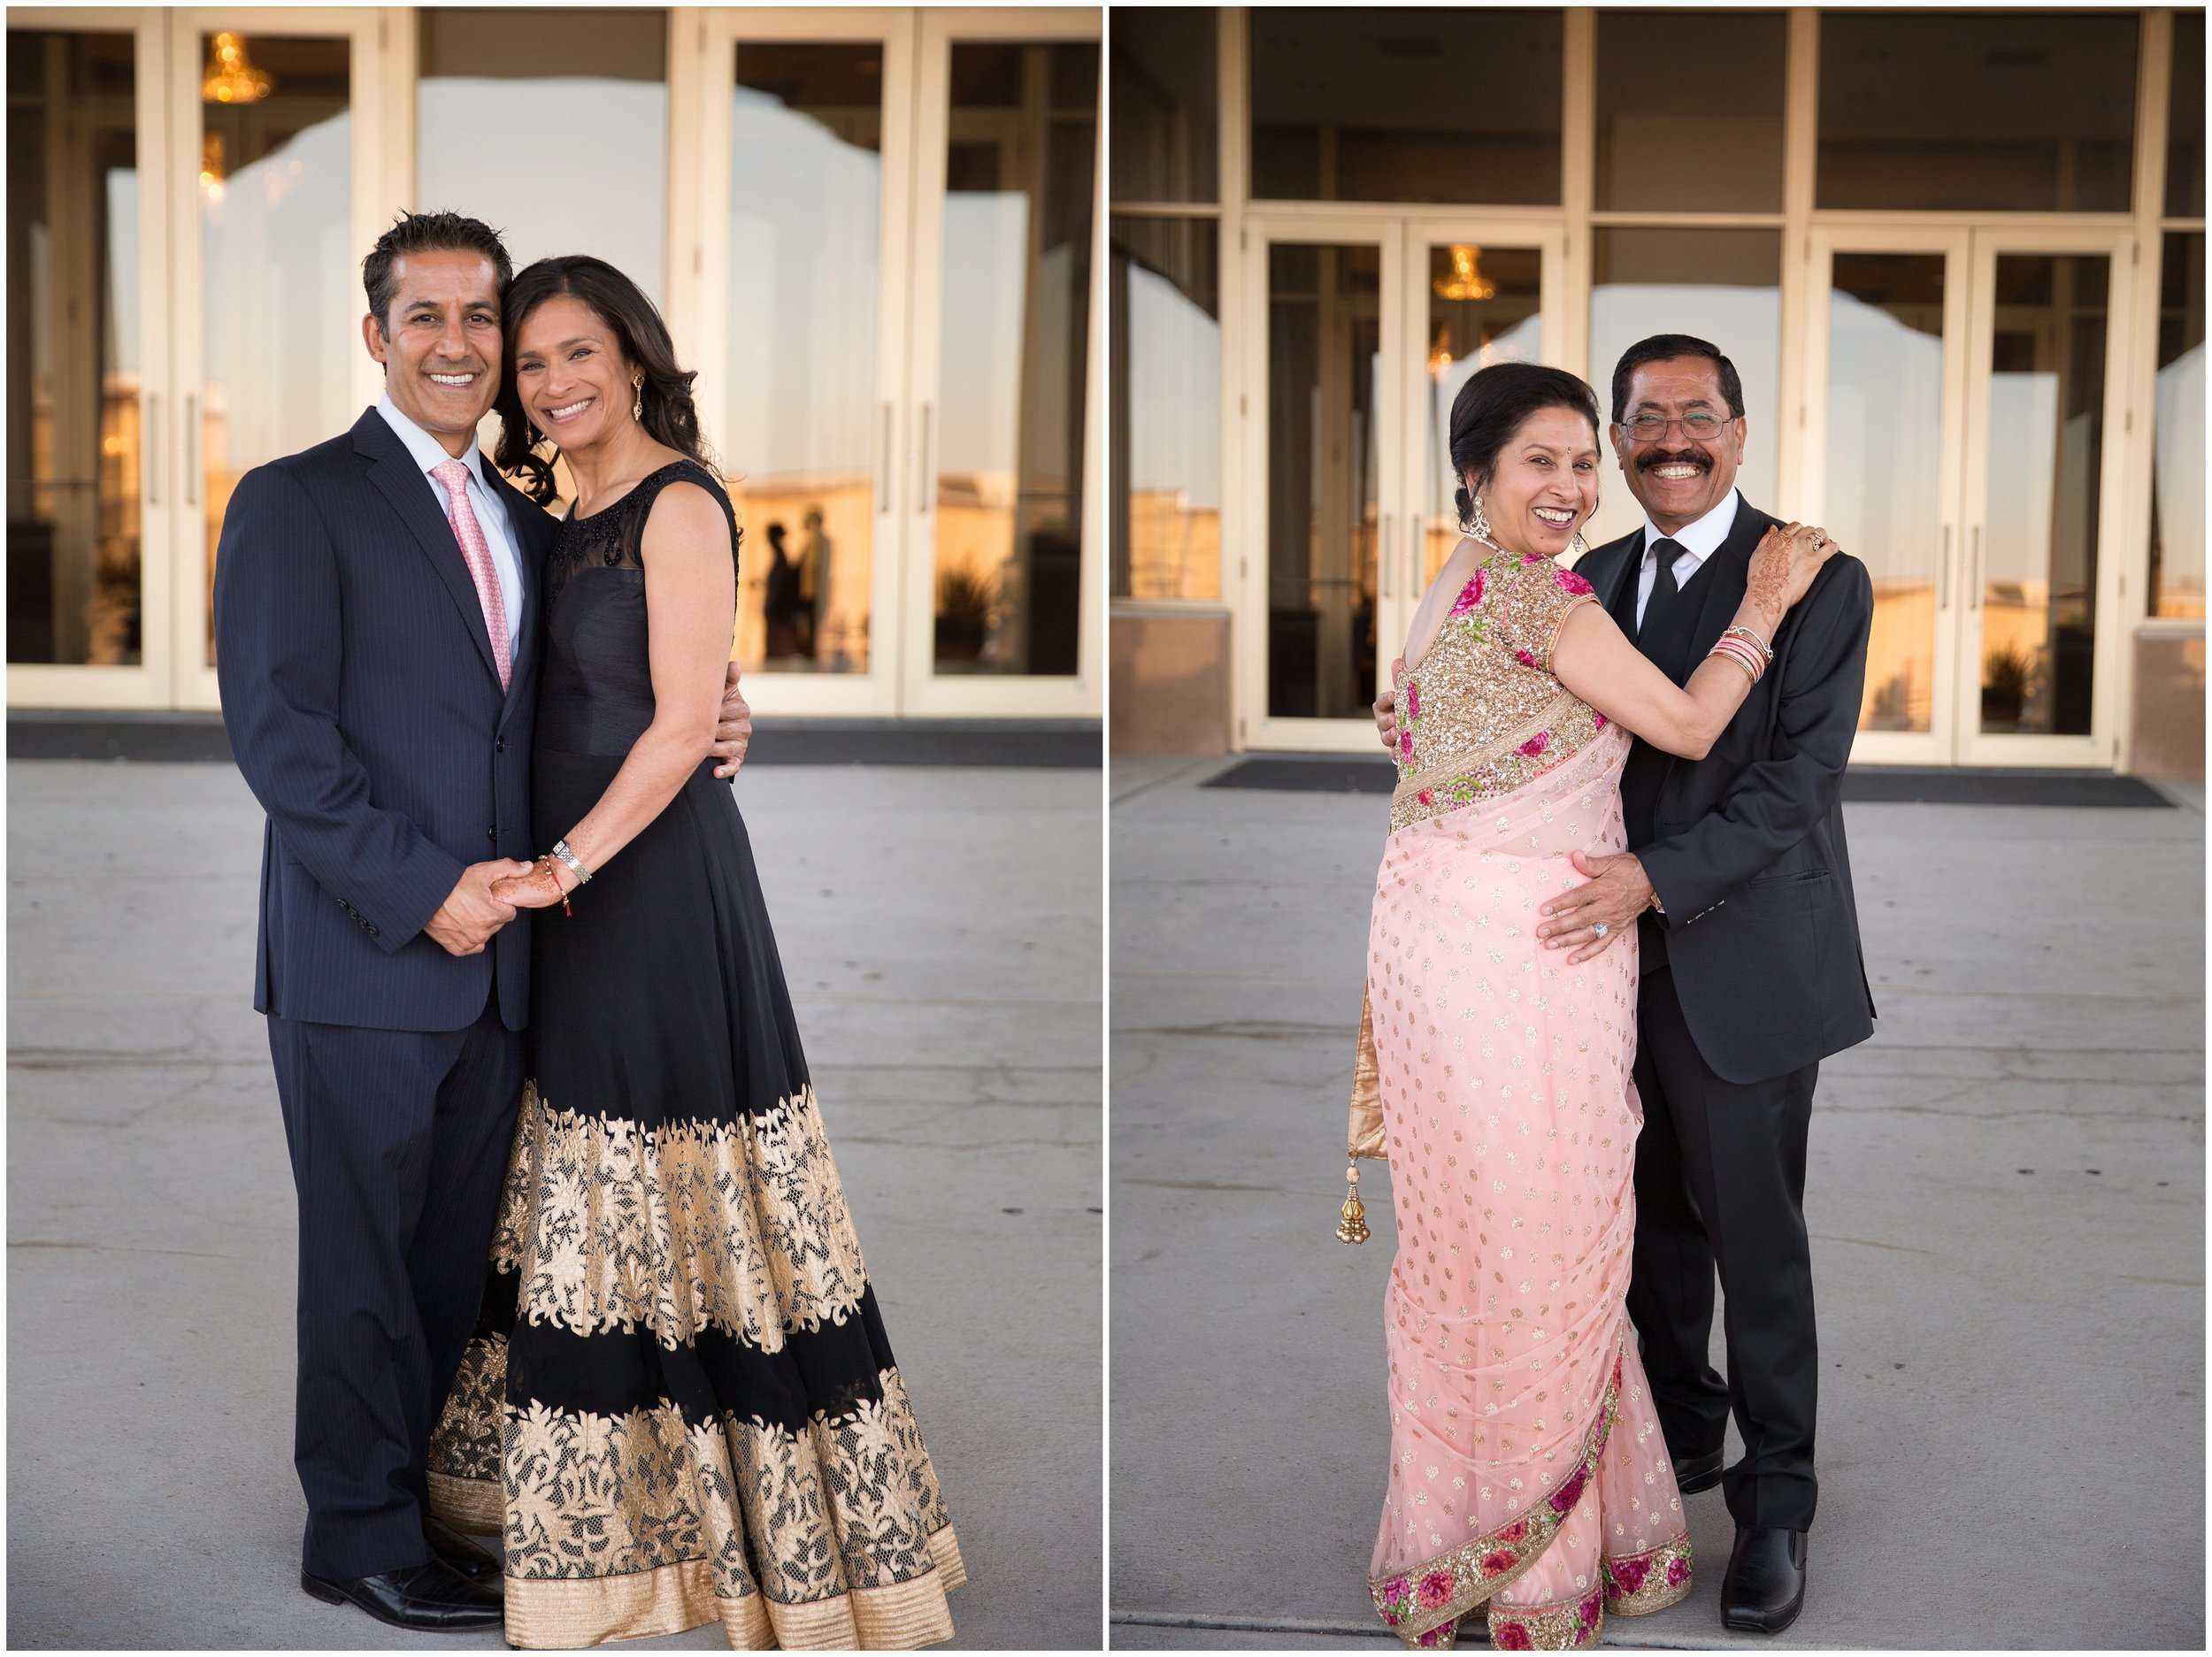 Le Cape Weddings - South Asian Wedding in Illinois - Tanvi and Anshul -0661_LuxuryDestinationPhotographer.jpg